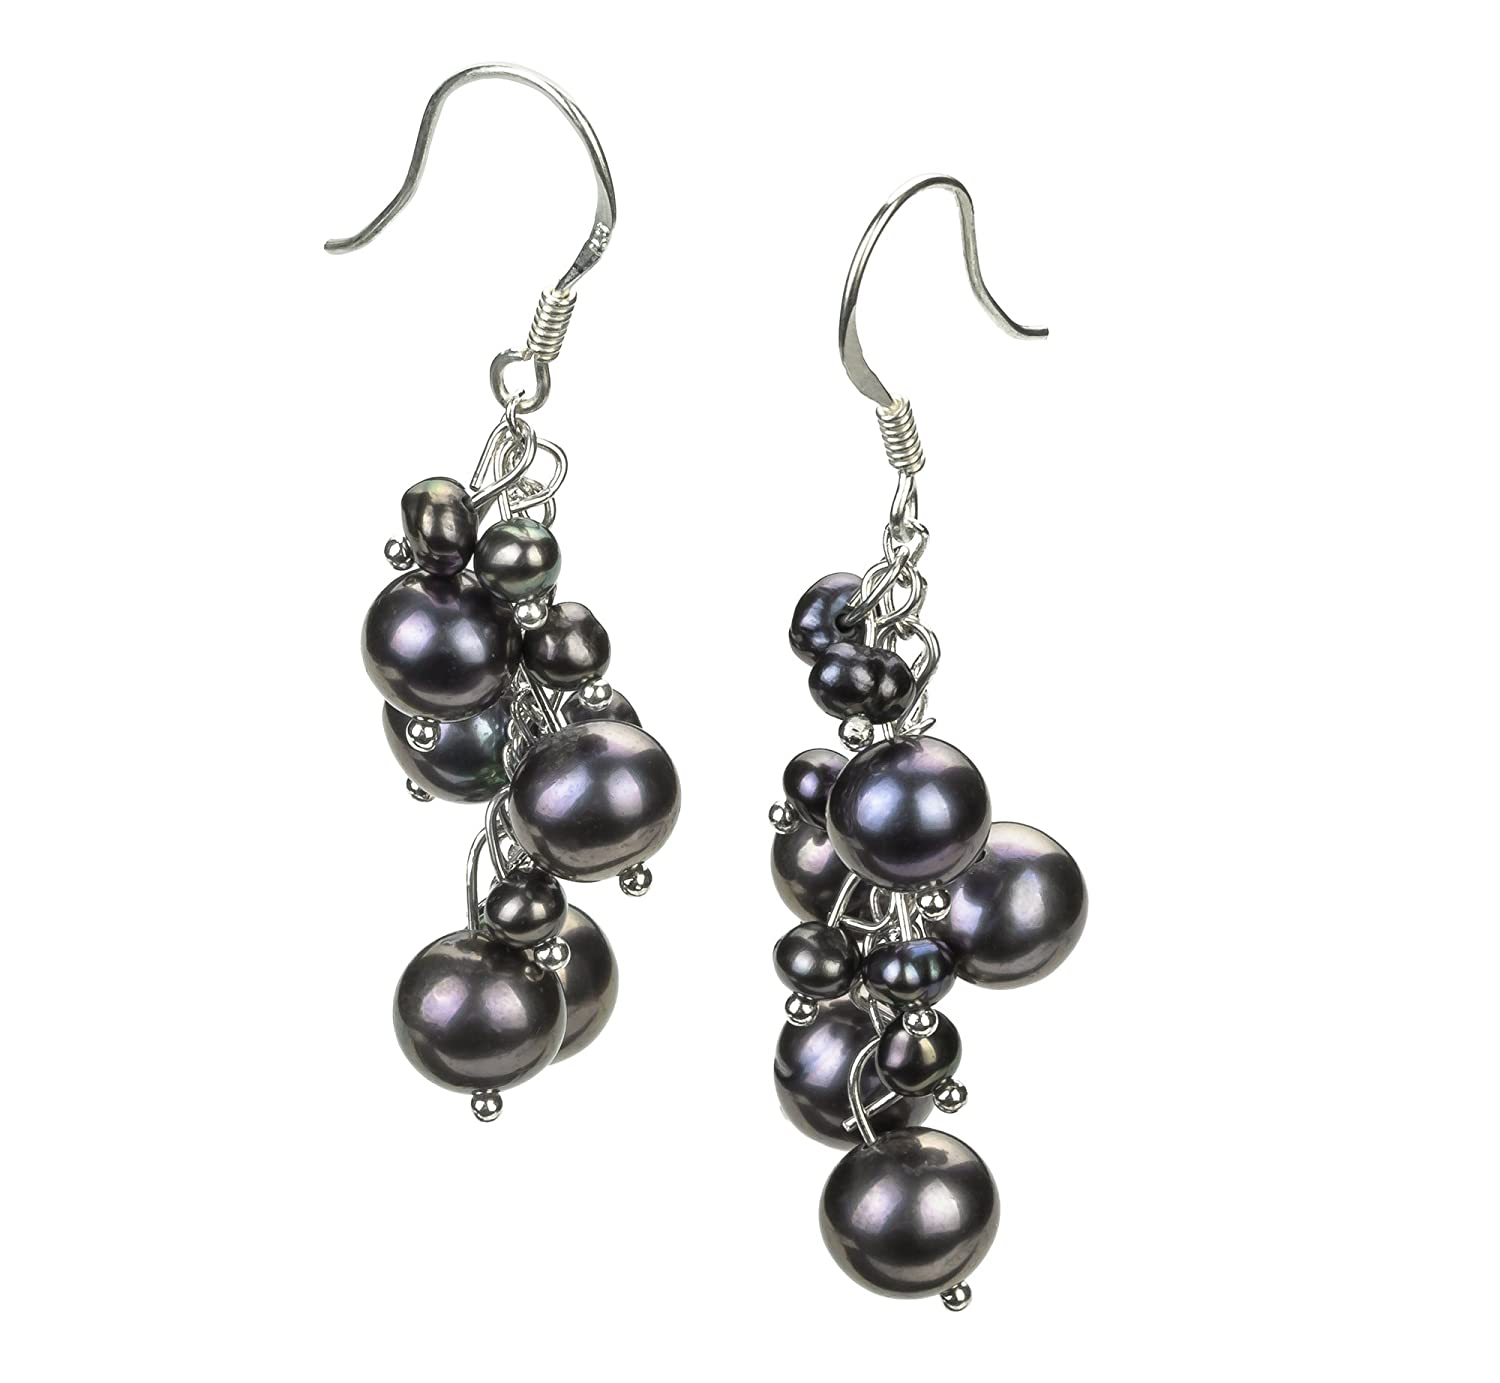 Black 3-7mm A Quality Freshwater Alloy Cultured Pearl Earring Pair